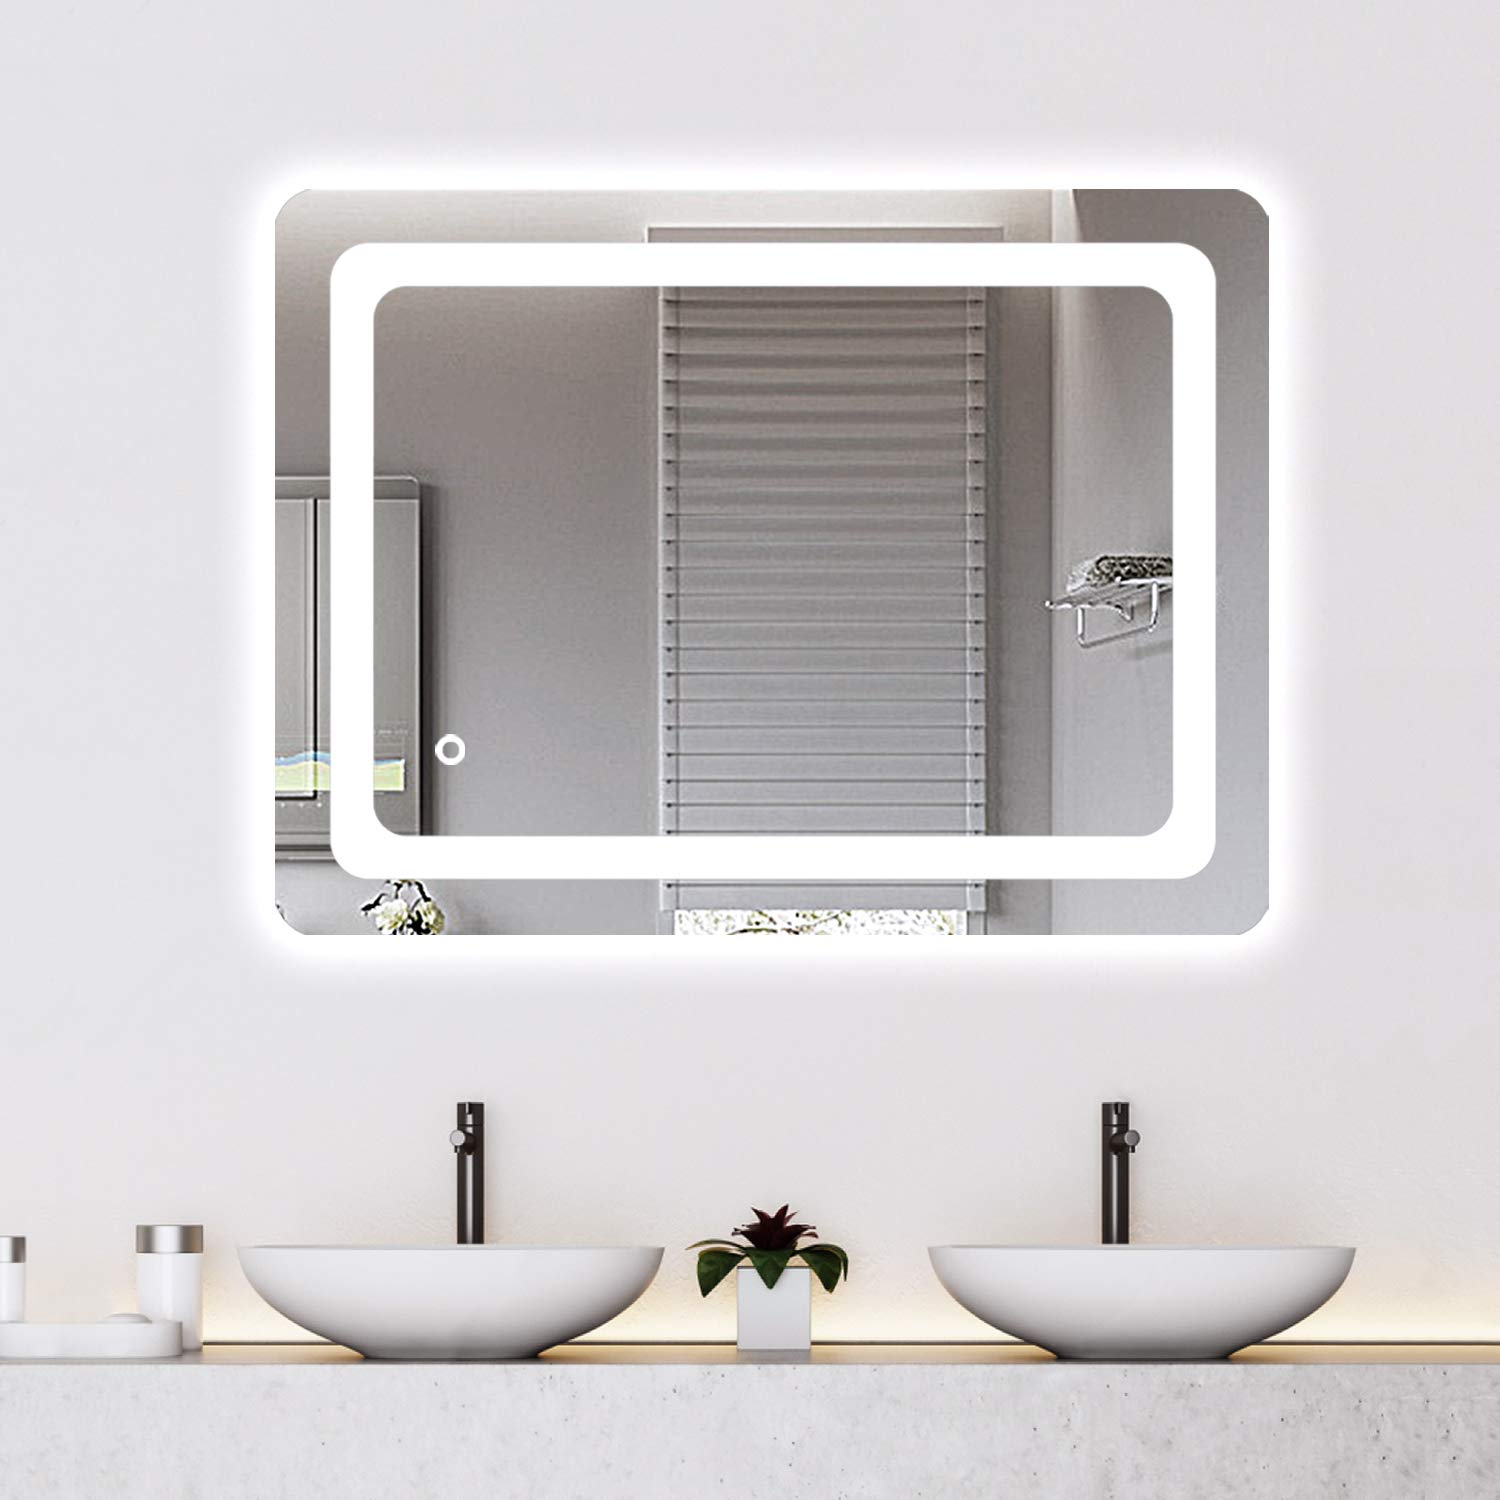 Cozy Castle Bathroom Mirror with LED Lights Lighted Makeup Vanity Mirror Wall Mounted Frameless Large Size 32x24 inch Rectangular, Memory Touch Button, Horizontal/Vertical, Warm White/Daylight Lights by Cozy Castle